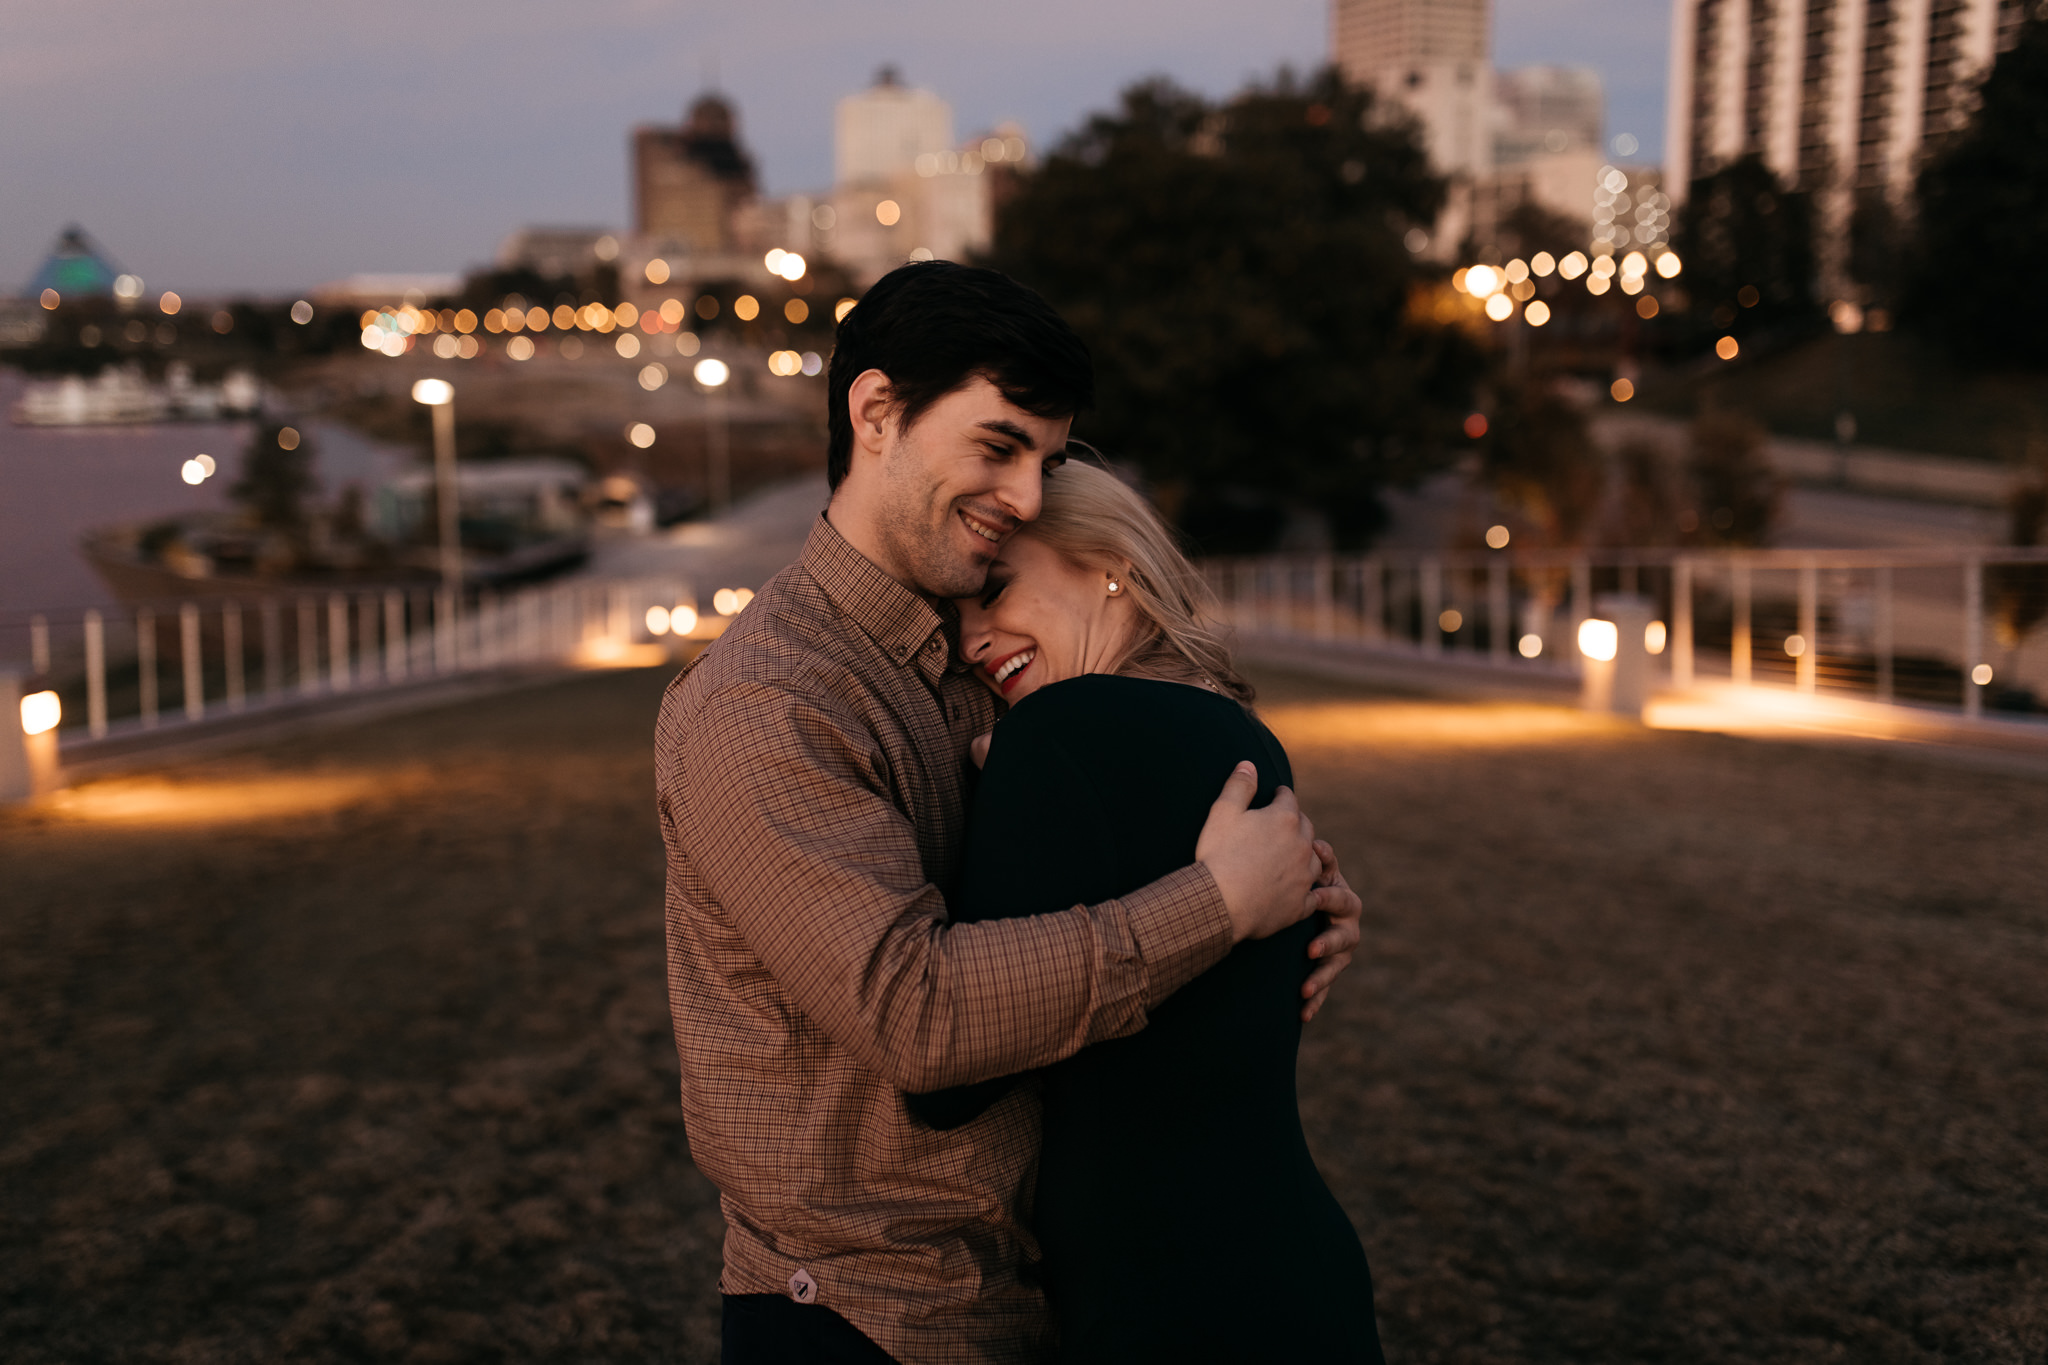 memphis-wedding-photographer-cassie-cook-photography-cafe-keough-engagement-photoshoot-coffee-engagement-47.jpg